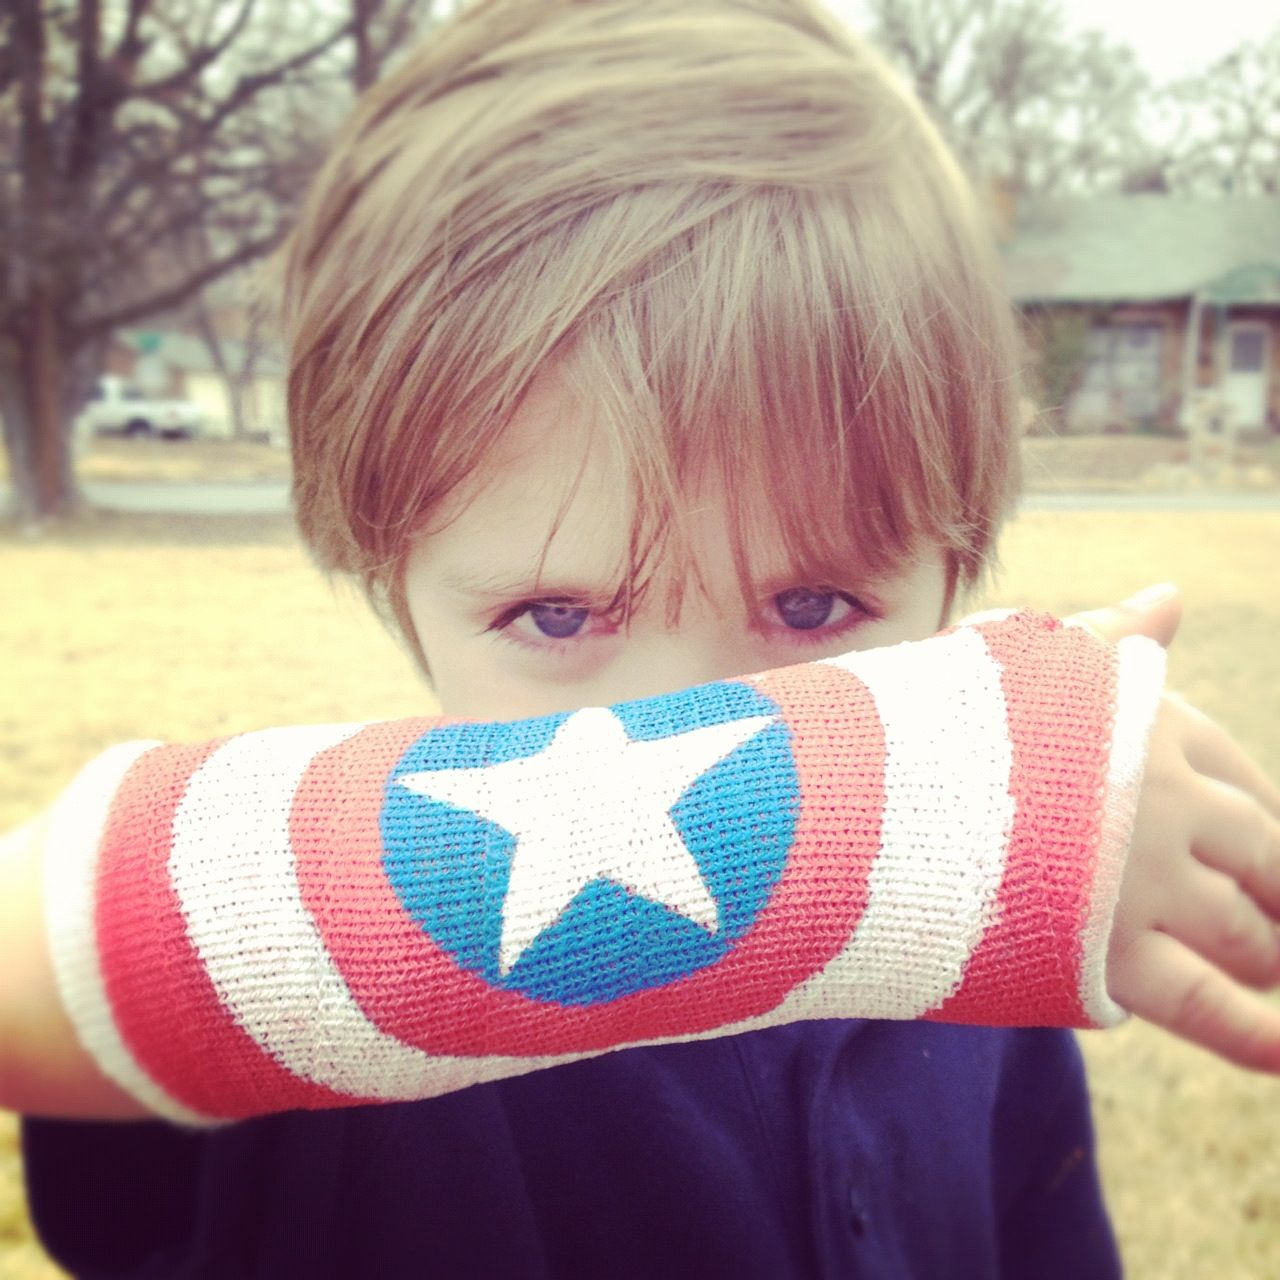 decorating arm cast ideas - Google Search | bows for 5 | Arm